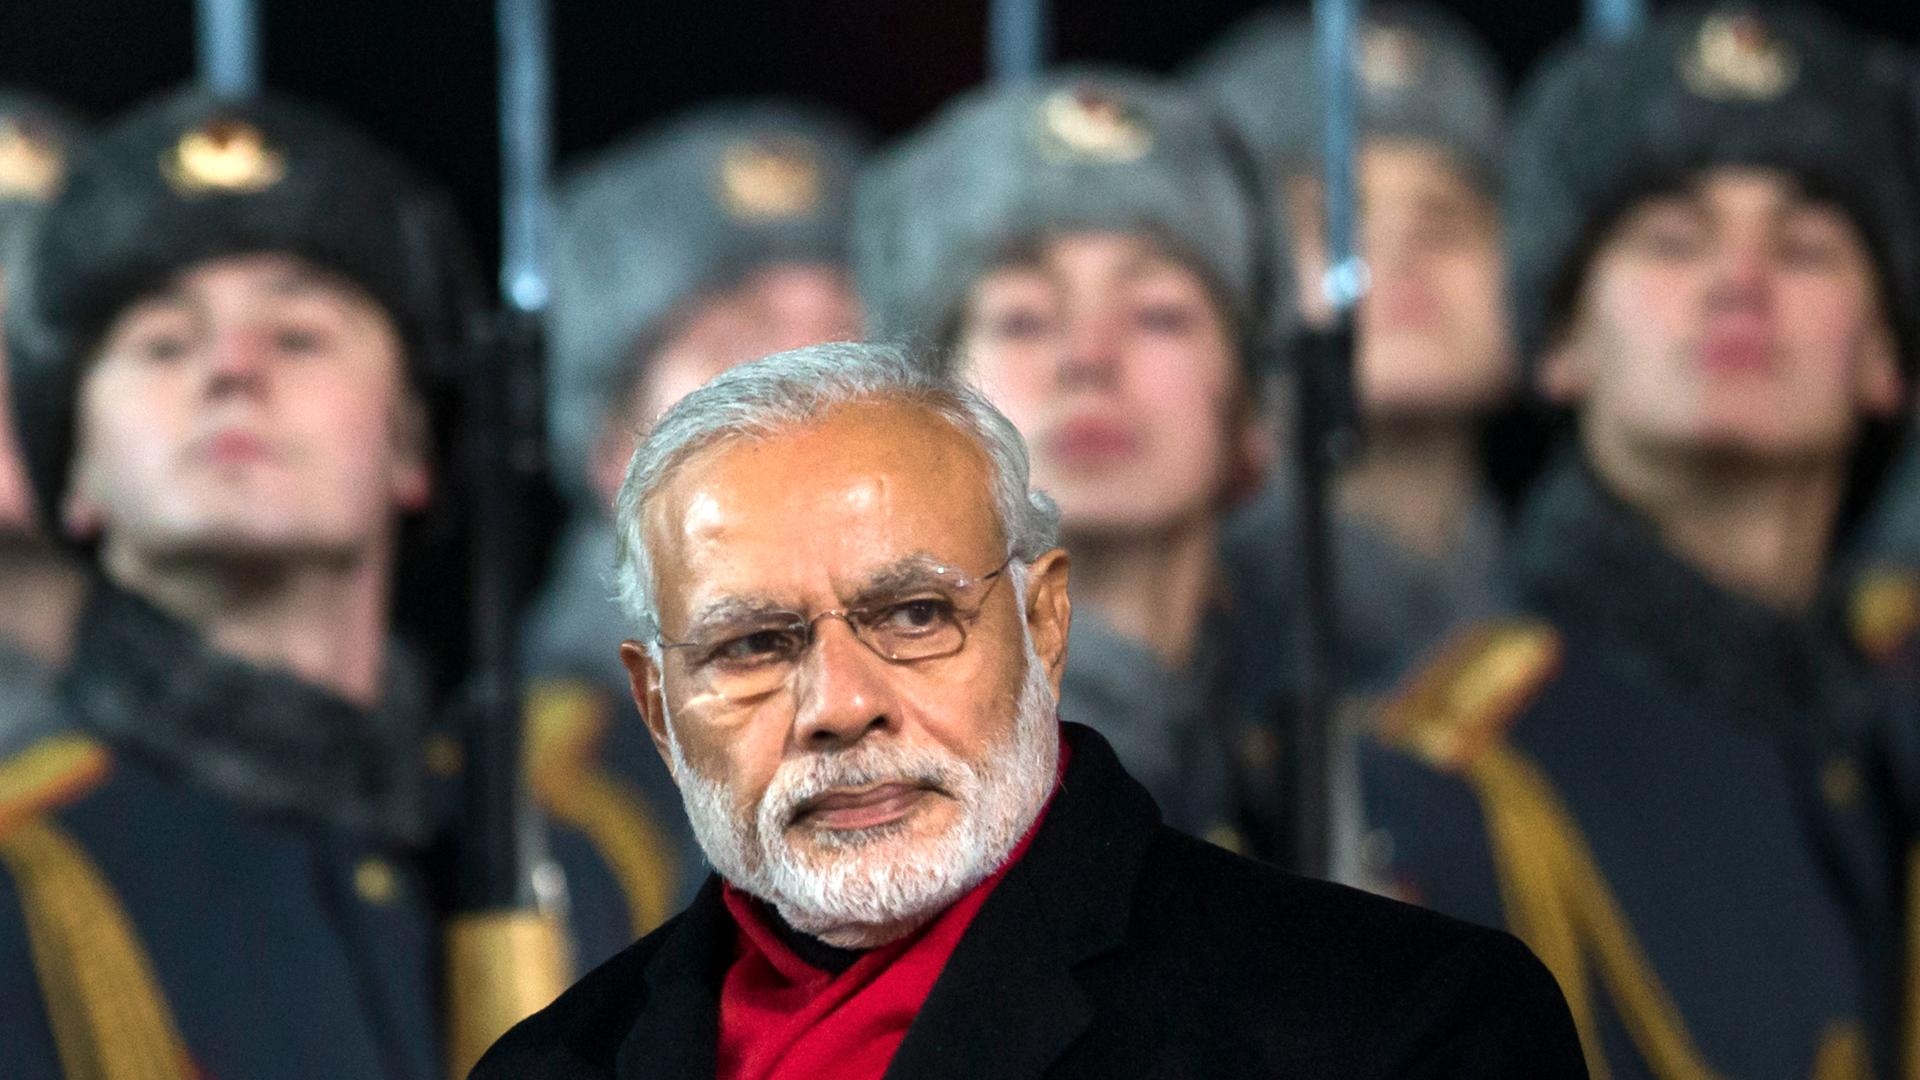 Putin, Modi vow closer ties as their governments sign defense, energy deals